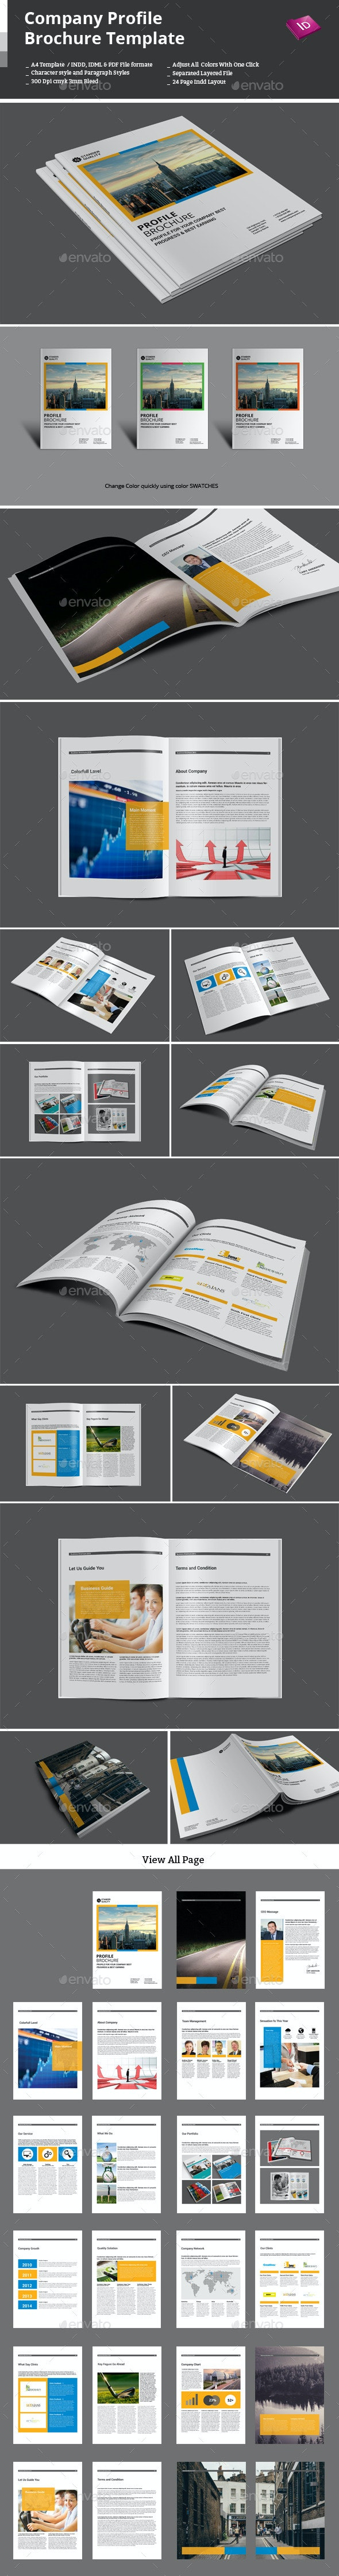 Company Profile Brochure Template - Corporate Brochures